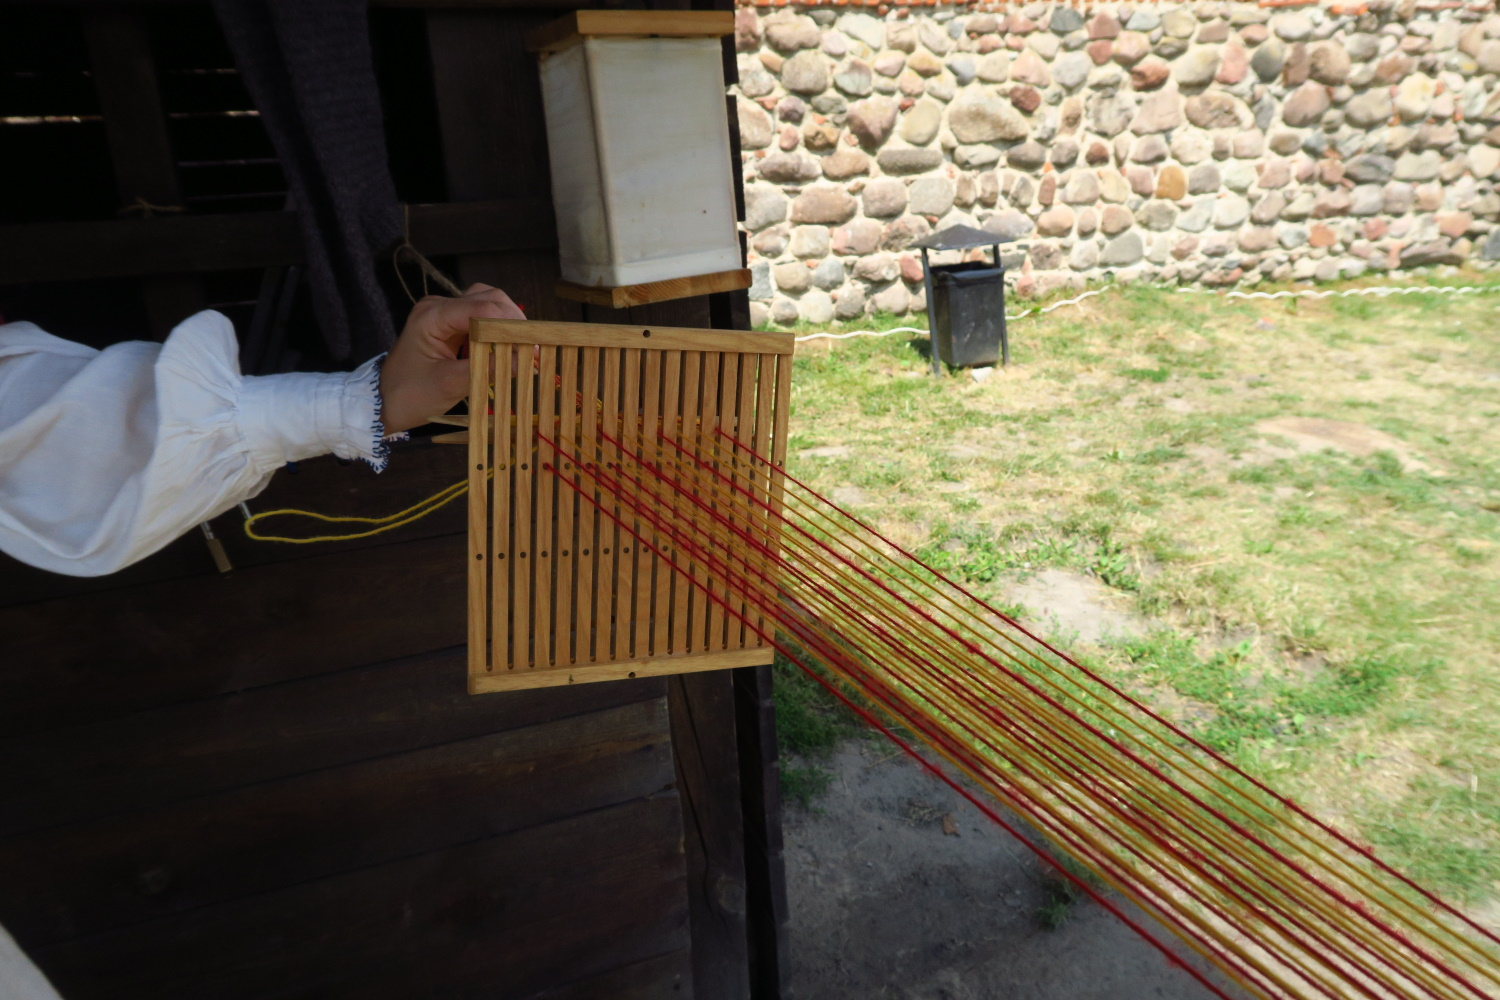 Weaving in a simple loom from the 1800s